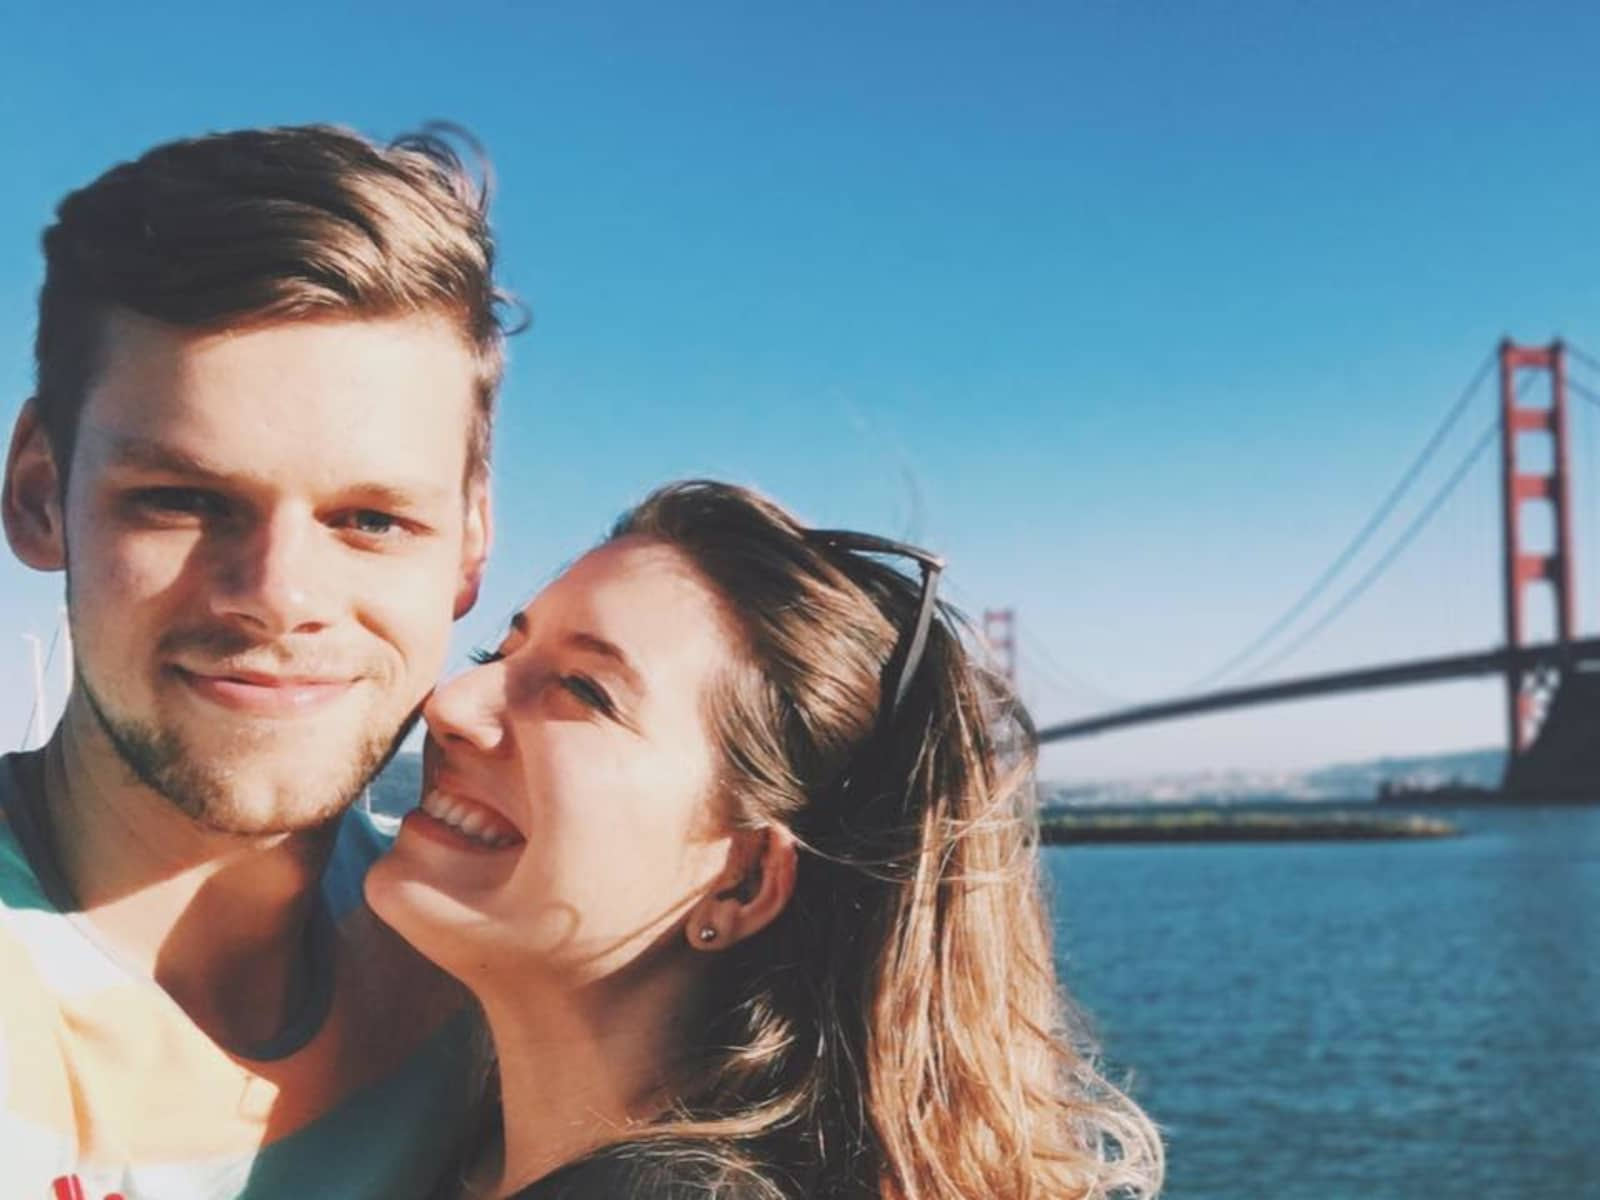 Isabele & Guilherme from Curitiba, Brazil